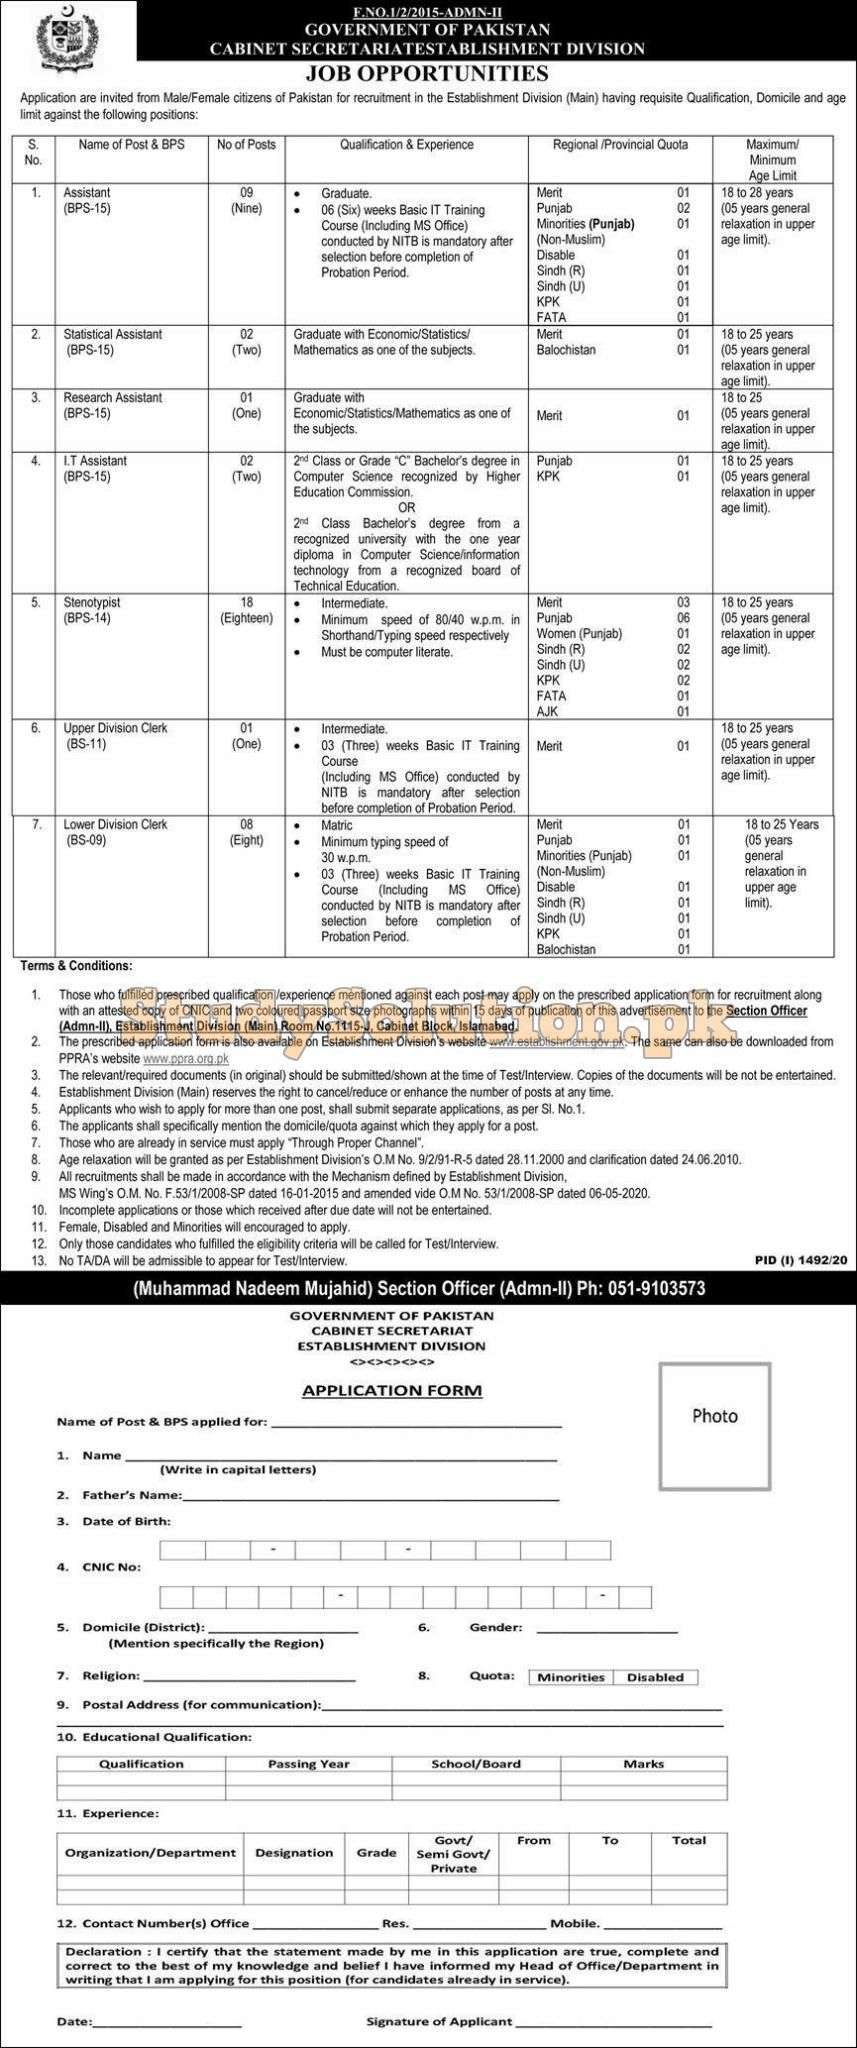 Cabinet Secretariat Government of Pakistan Latest Jobs 2020